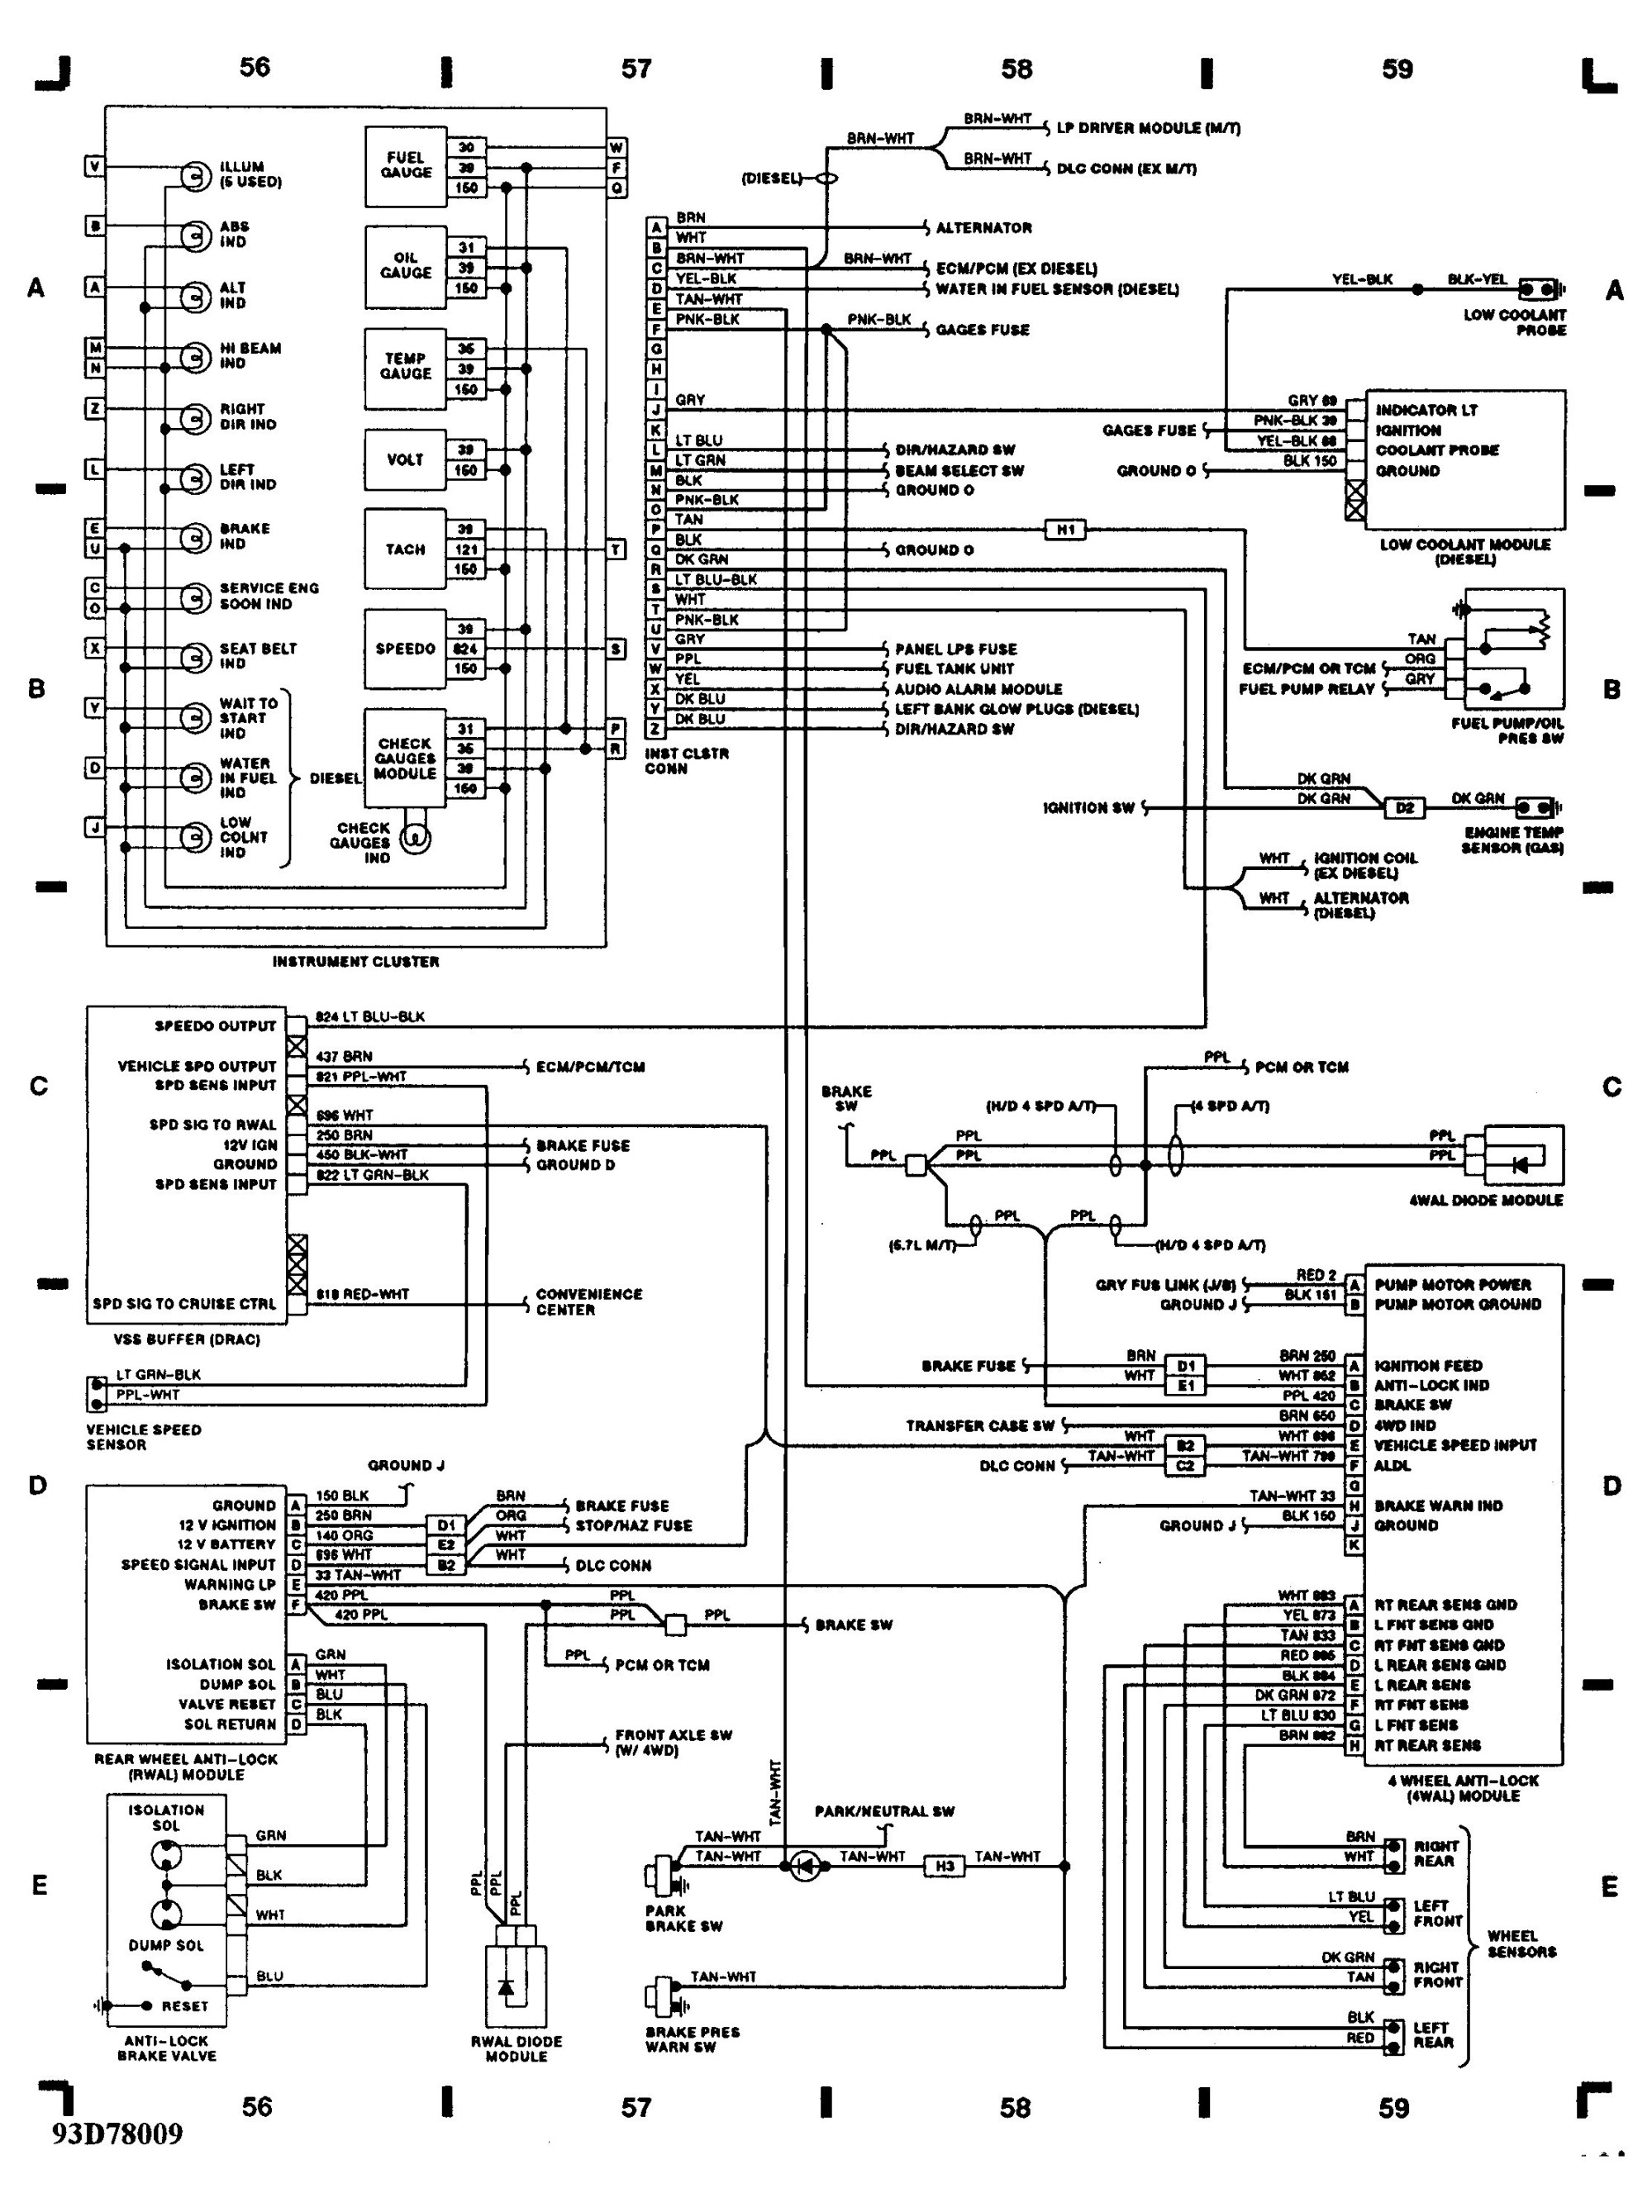 hight resolution of 1990 gmc v6 engine diagram wiring diagram post 1990 gmc v6 engine diagram